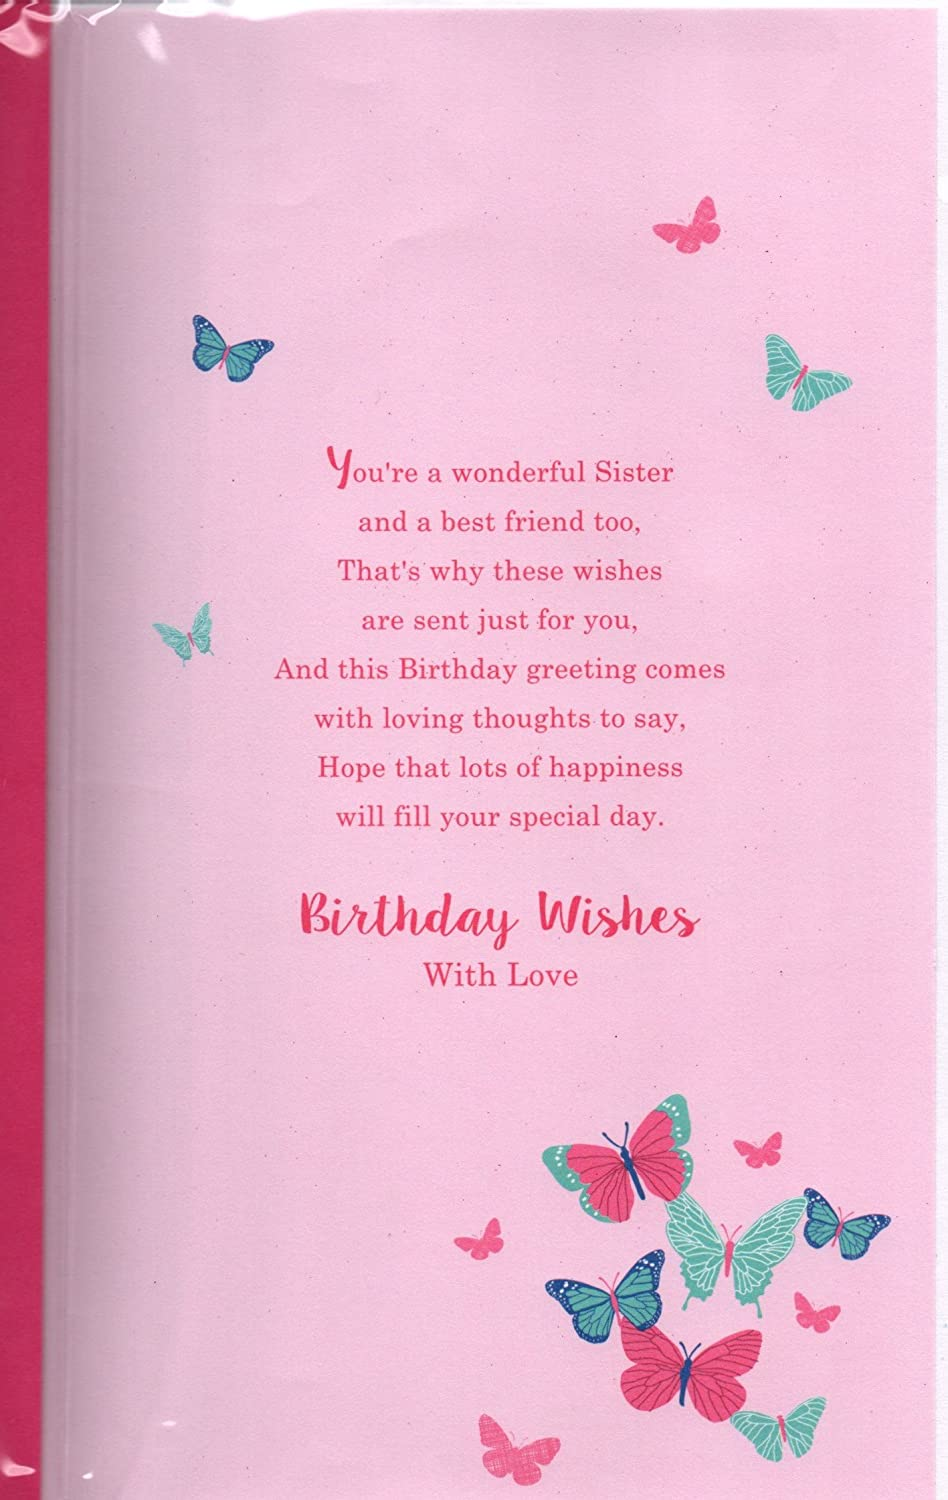 Sister Birthday Card Birthday Wishes Sister With Lots Of Love At